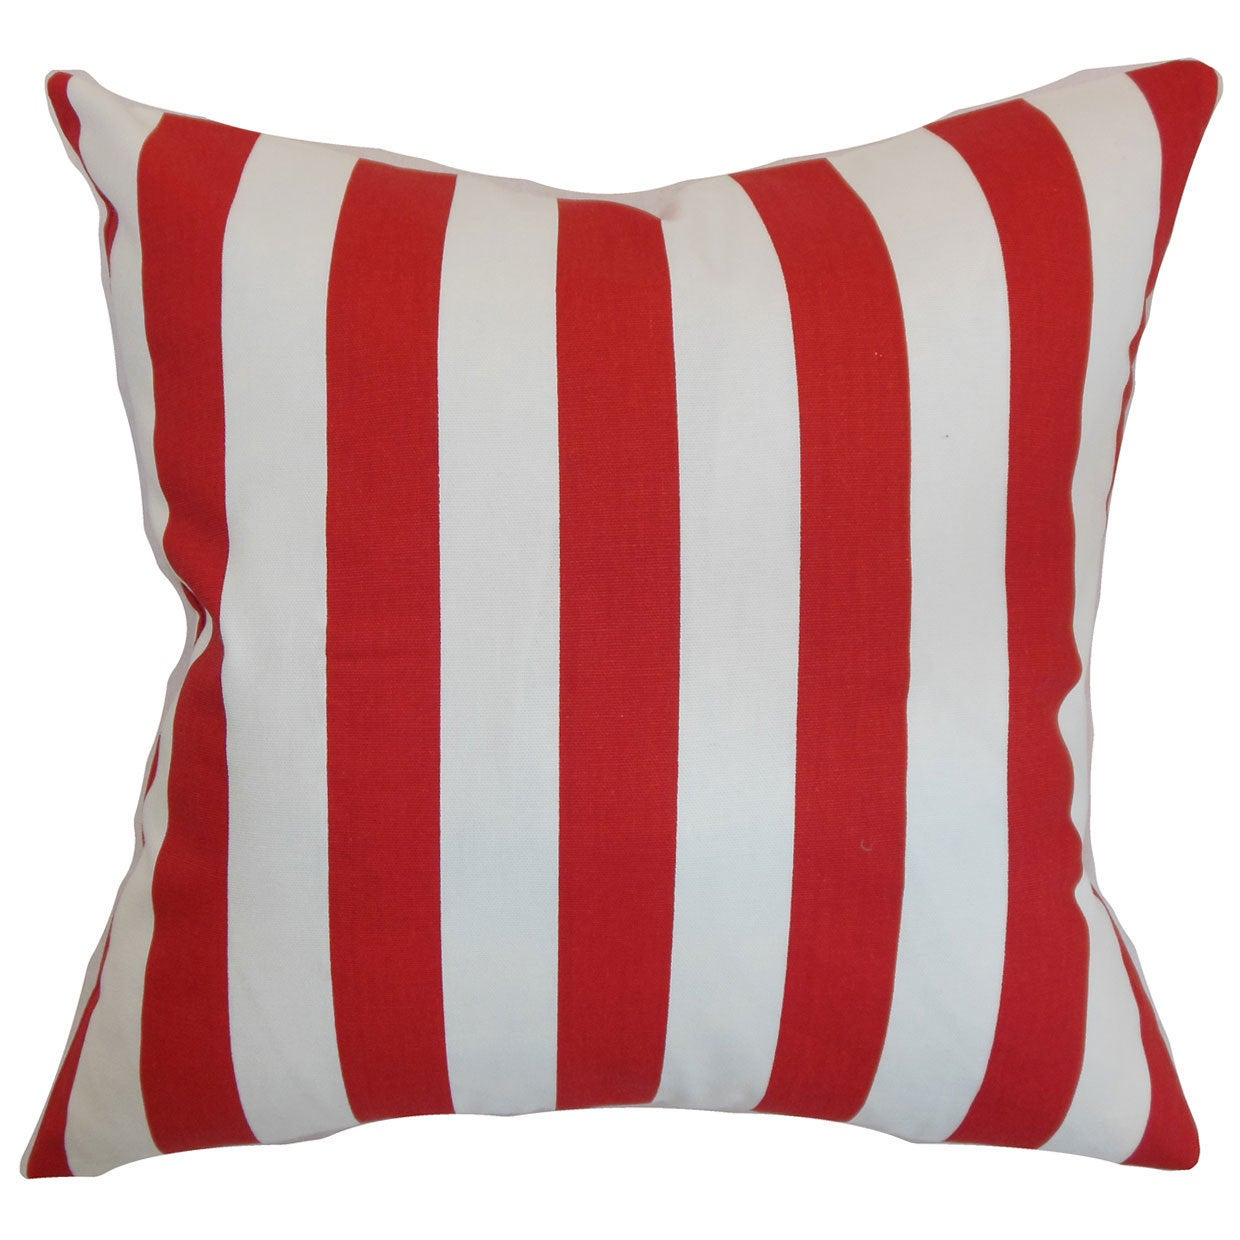 Ilaam Stripes Throw Pillow Cover Overstock 12018368